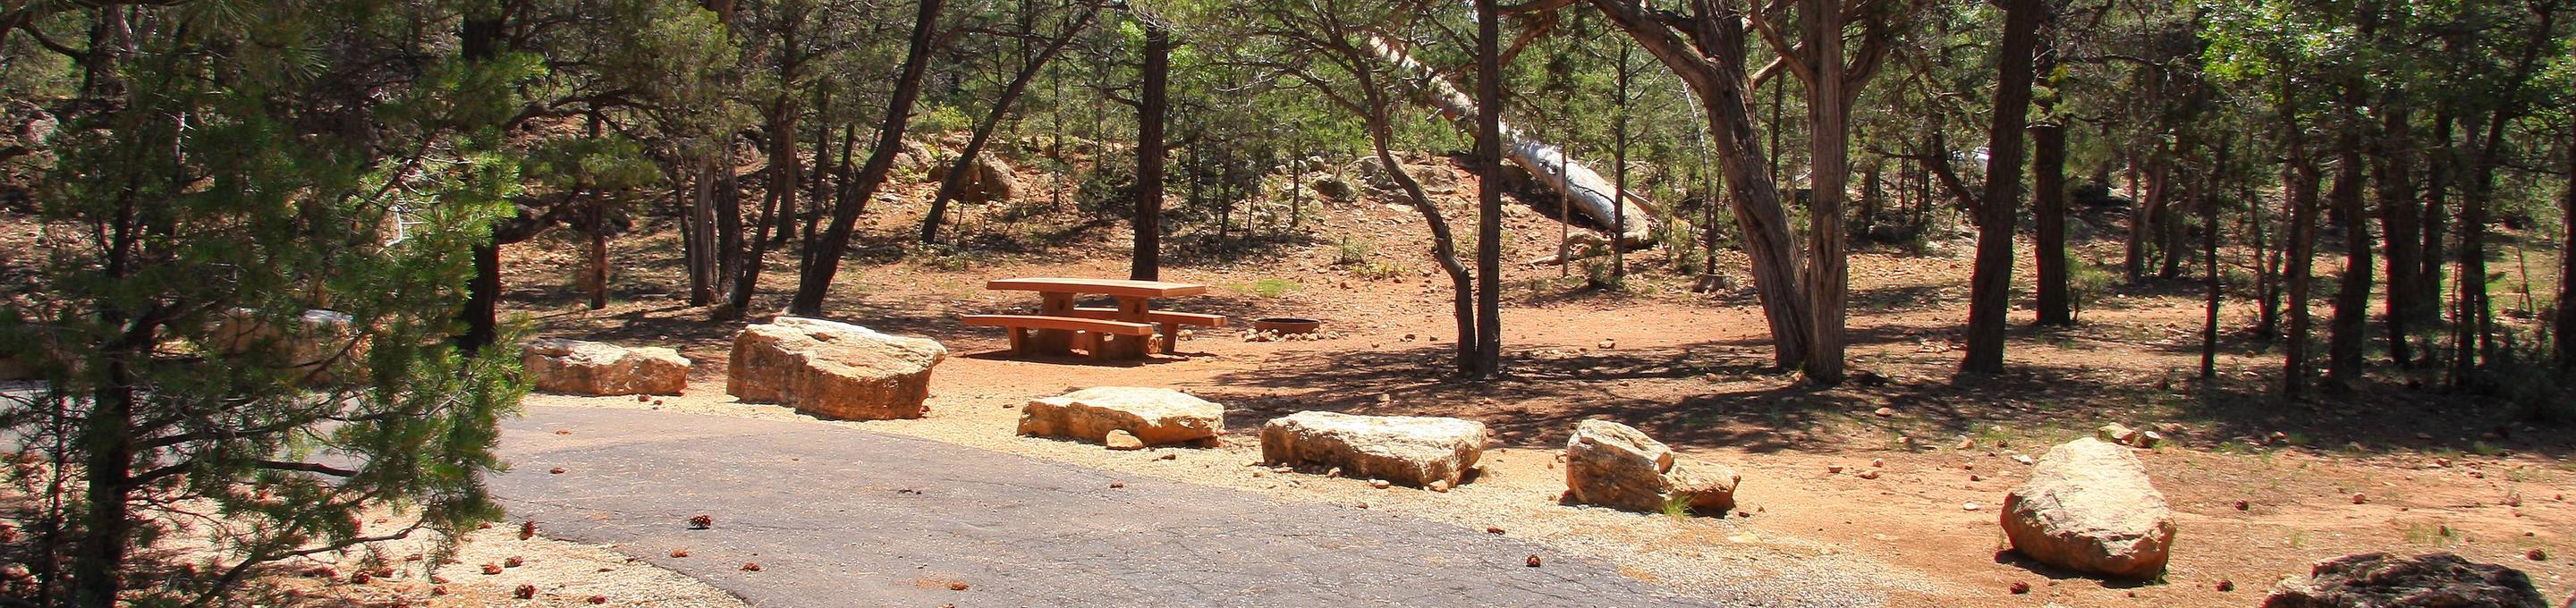 Picnic table, fire pit, and parking spot, Mather CampgroundPicnic table, fire pit, and parking spot for Juniper Loop 215, Mather Campground